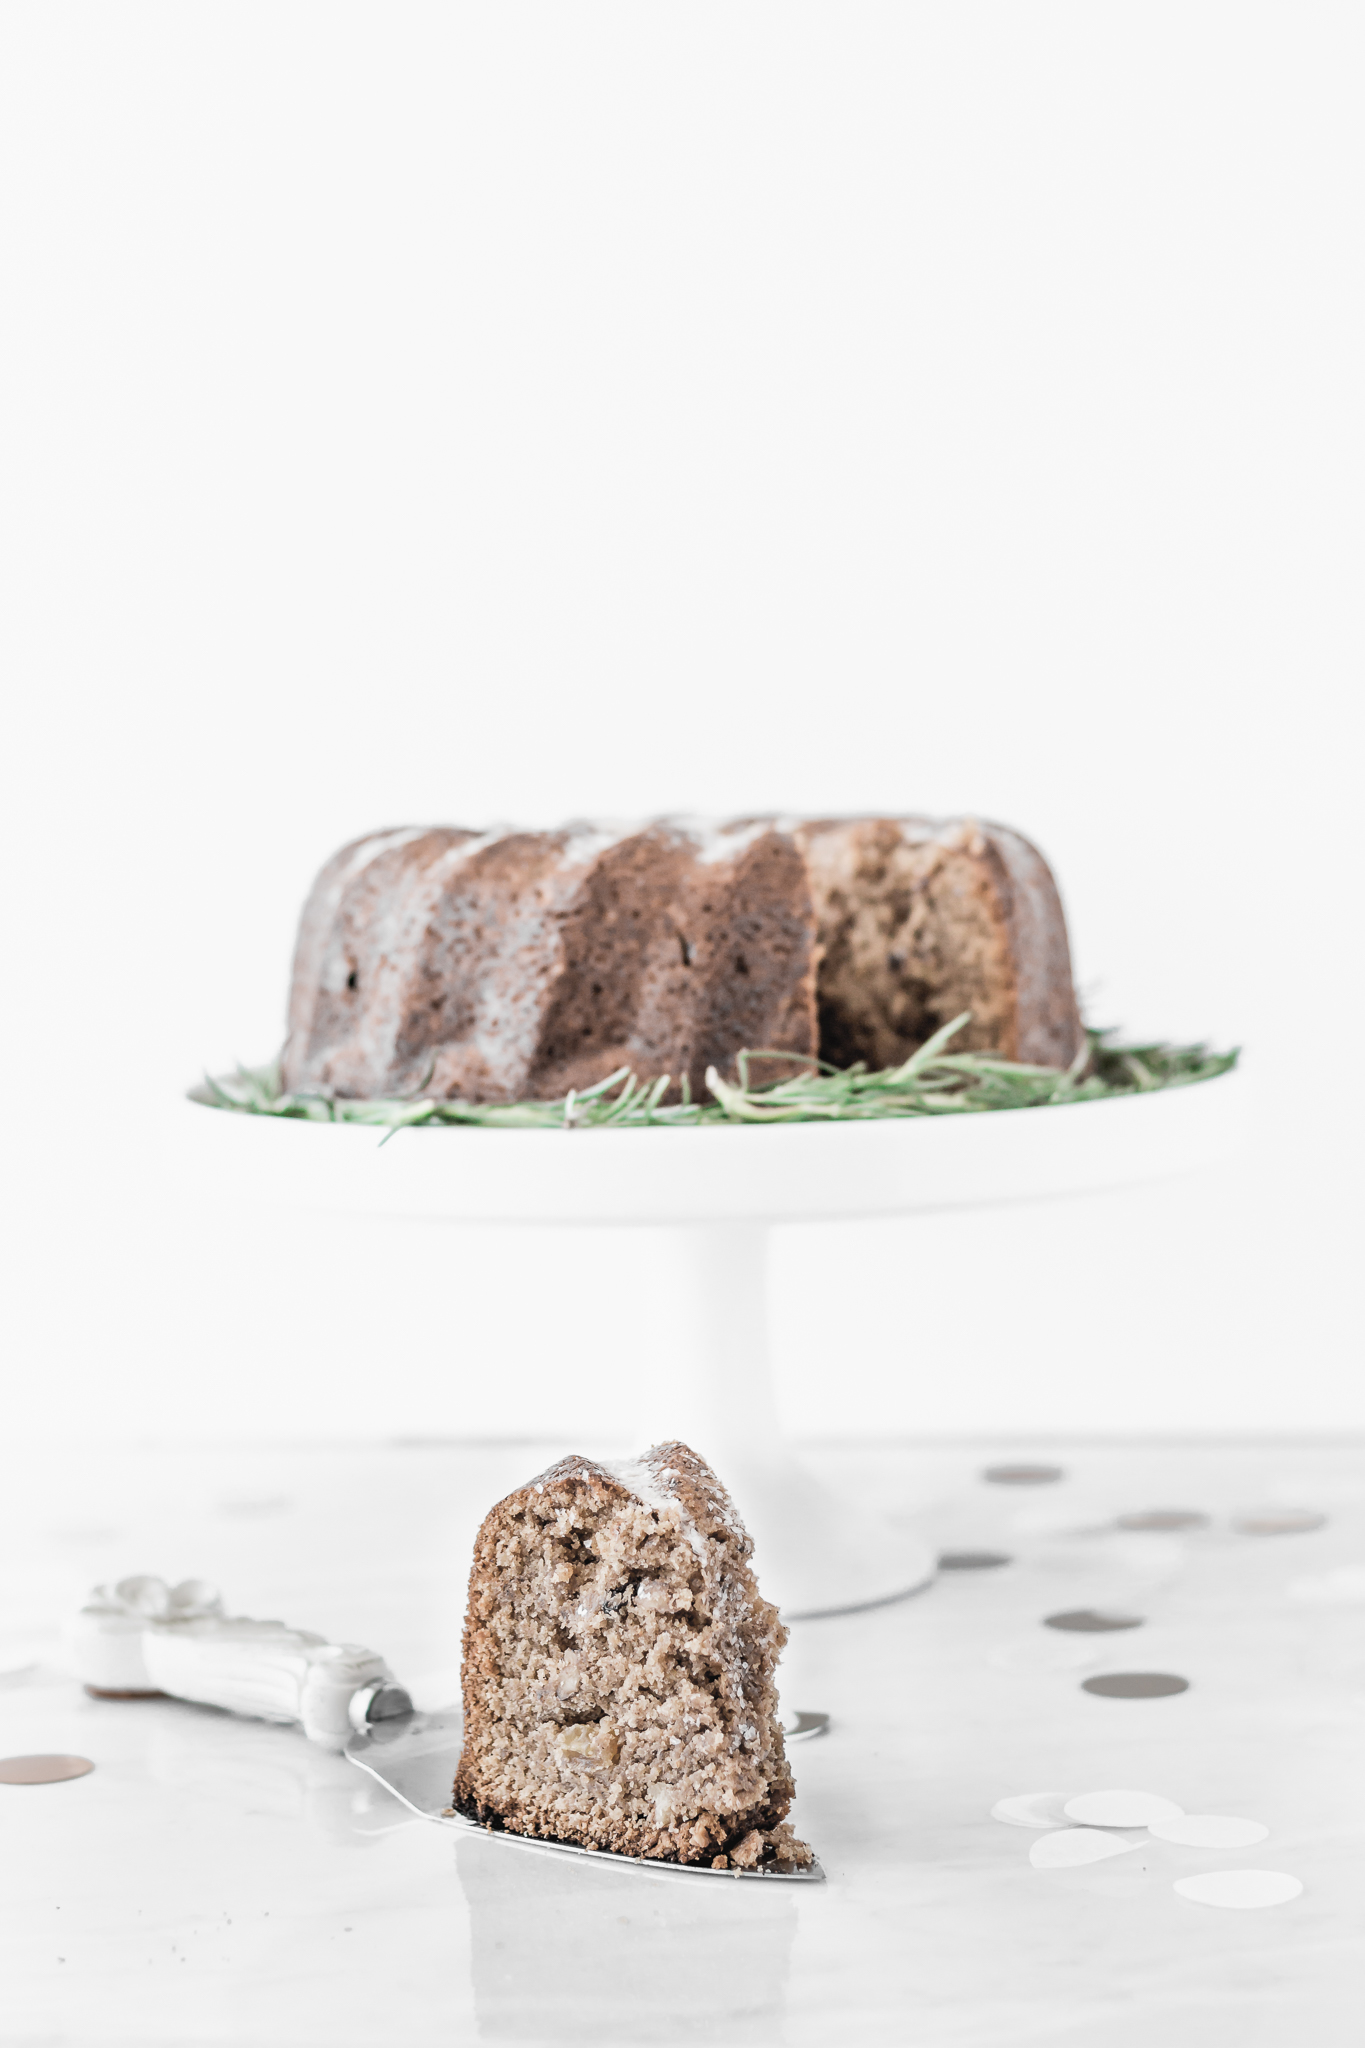 Christmas Bundt Cake with Walnuts and Raisins